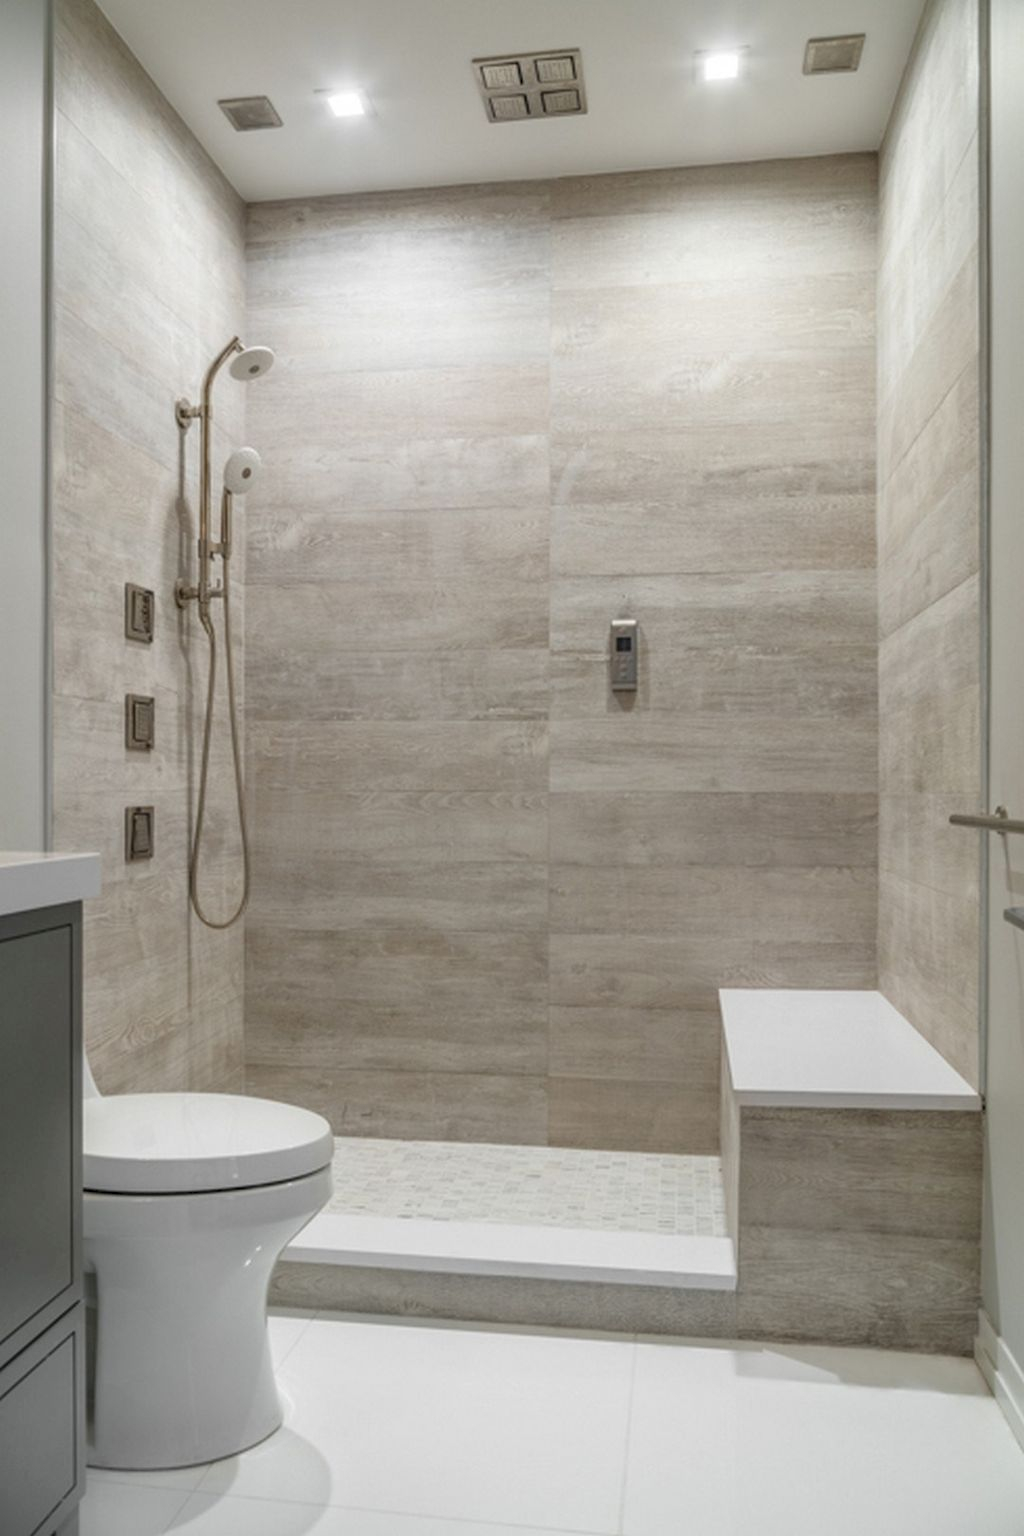 50 Small Master Bathroom Makeover Ideas On A Budget  Bathroom Awesome Ceramic Tile Ideas For Small Bathrooms 2018